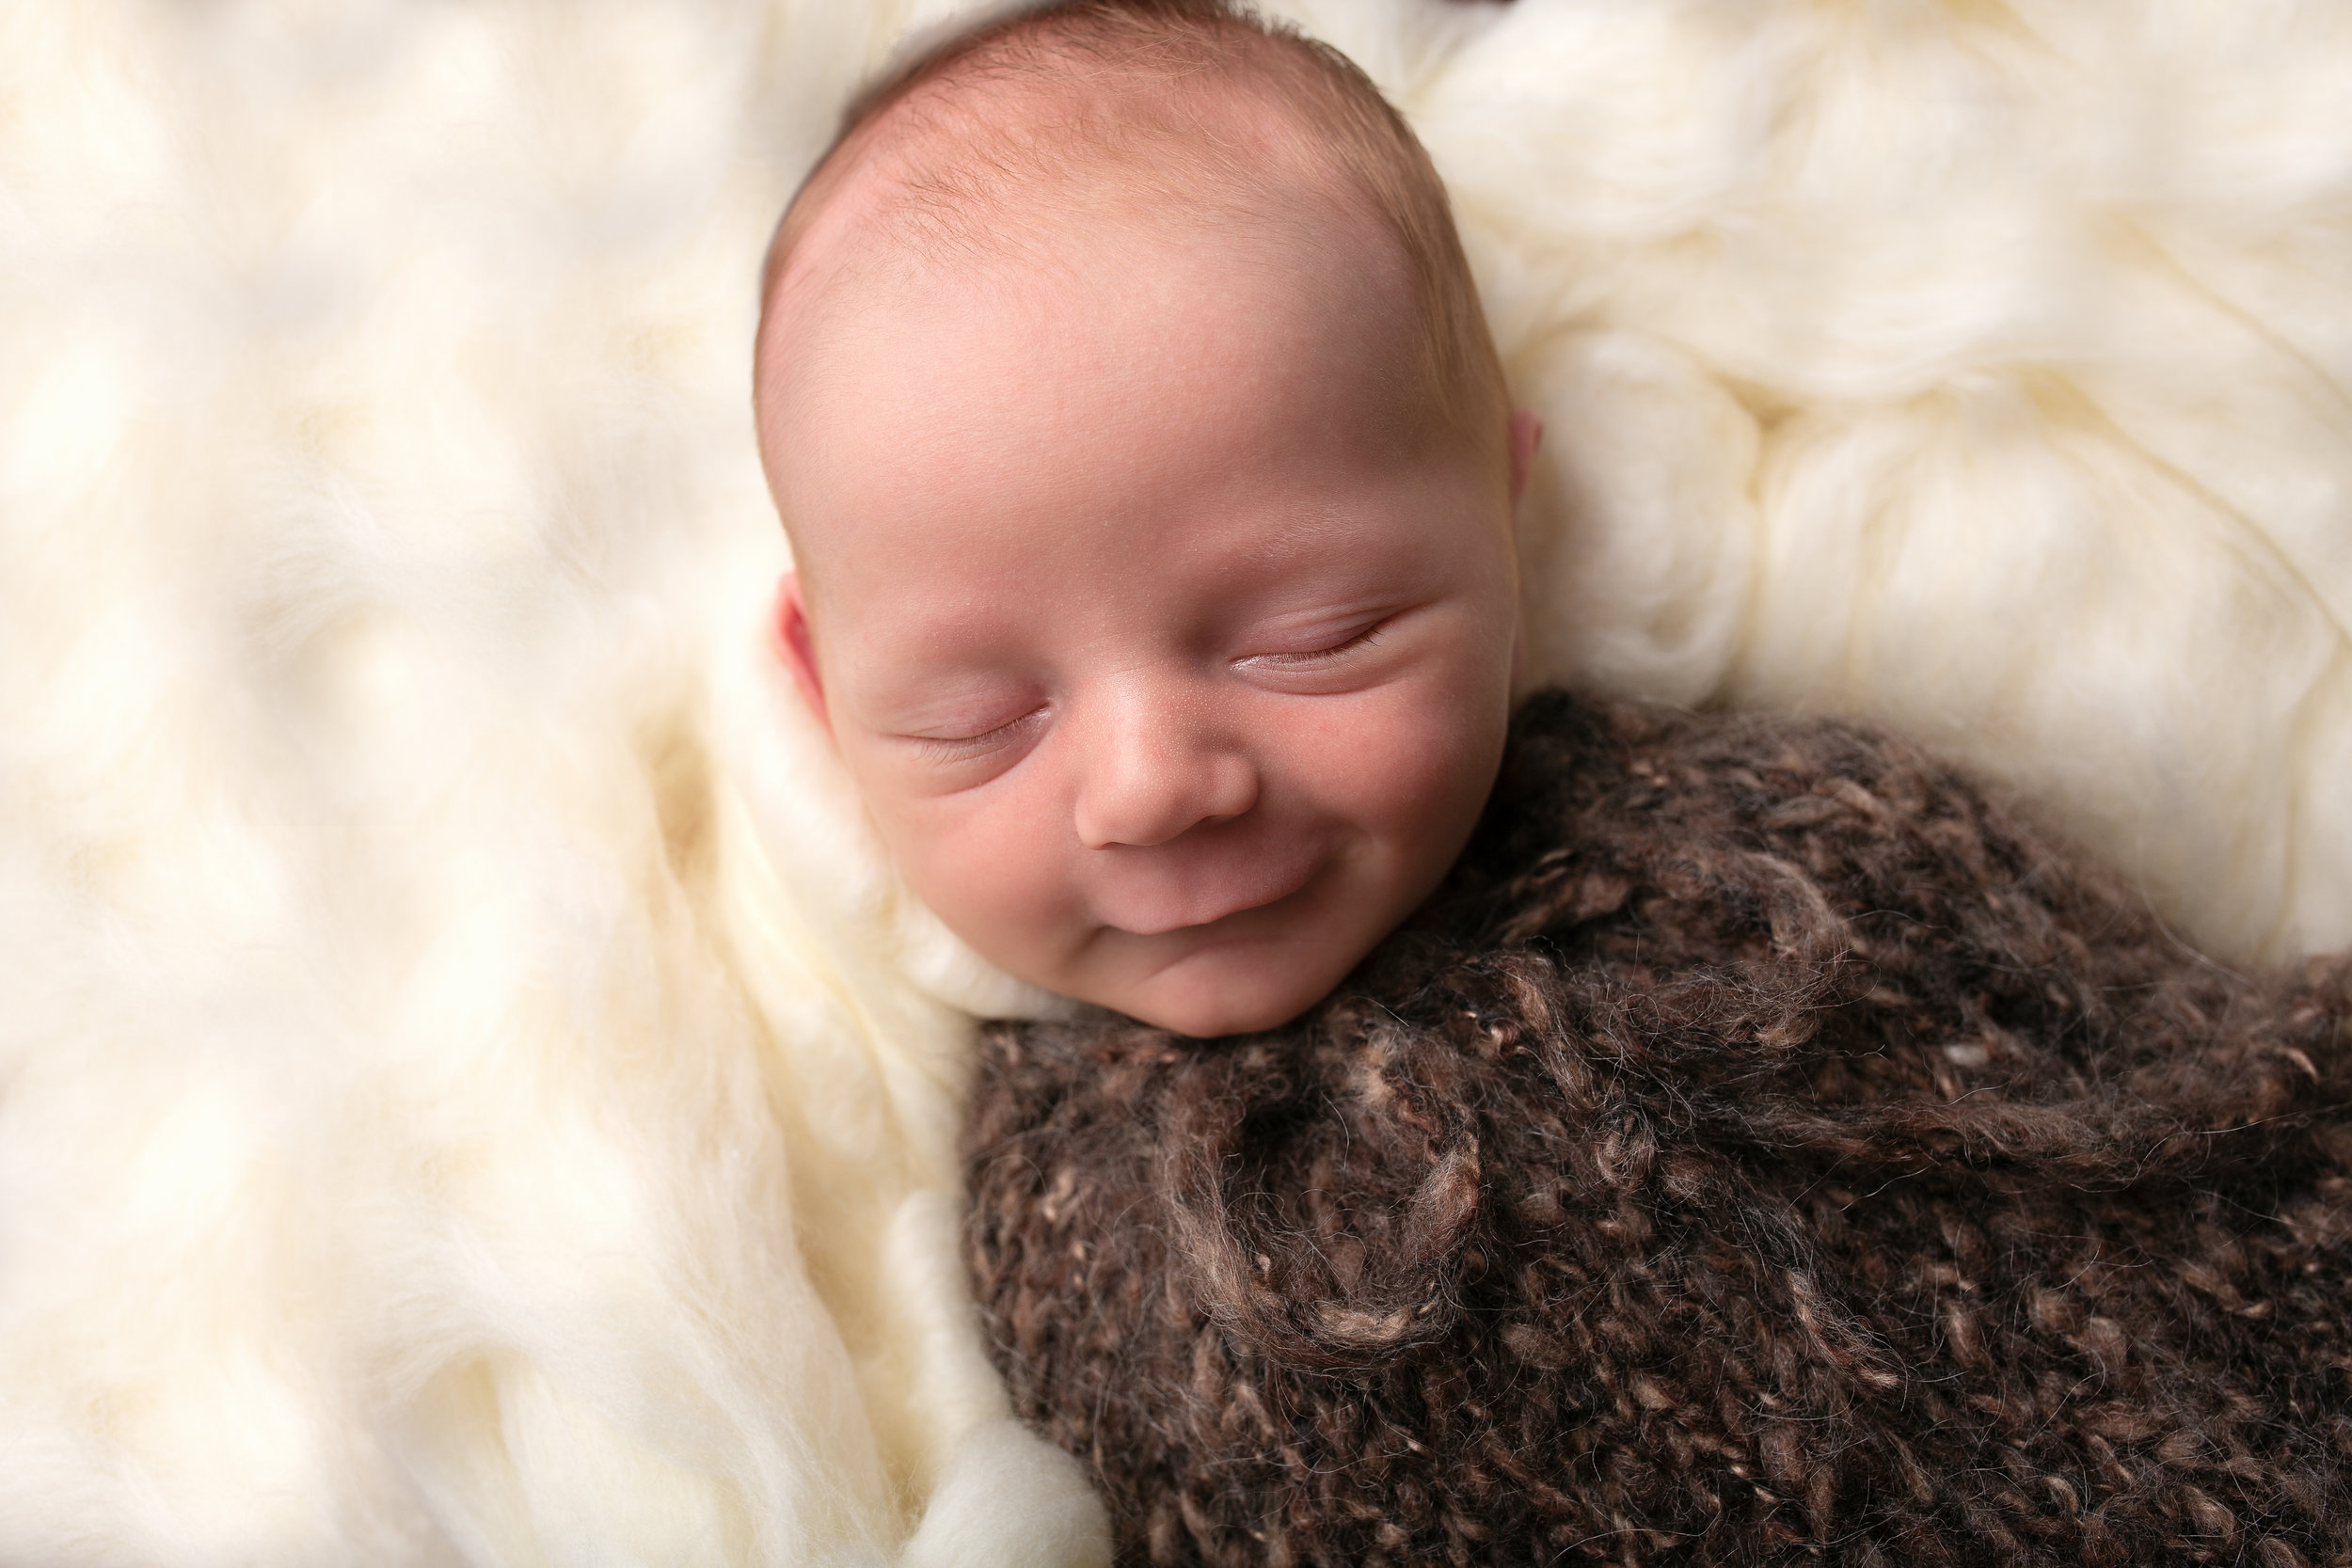 18_11_04 Melody Foster Newborn Session - Pryson75.jpg